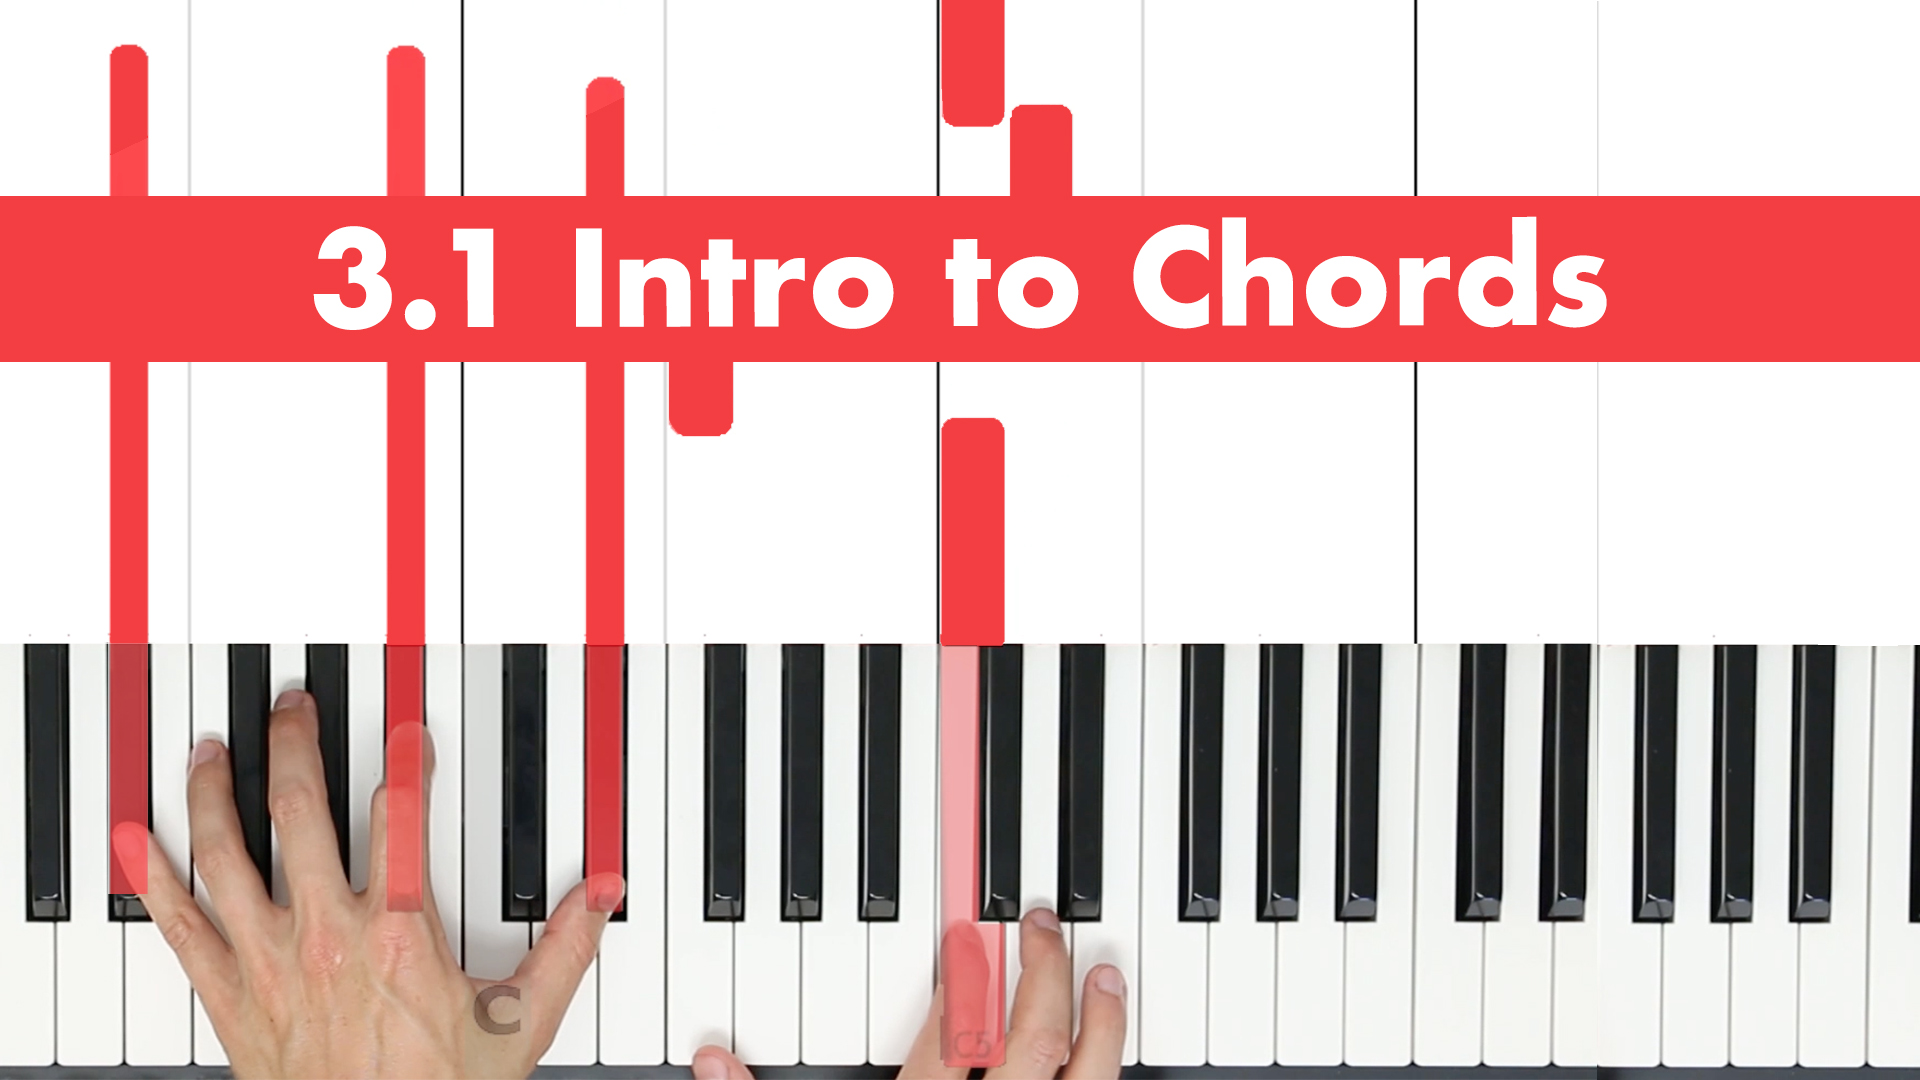 3.1 Intro to Chords